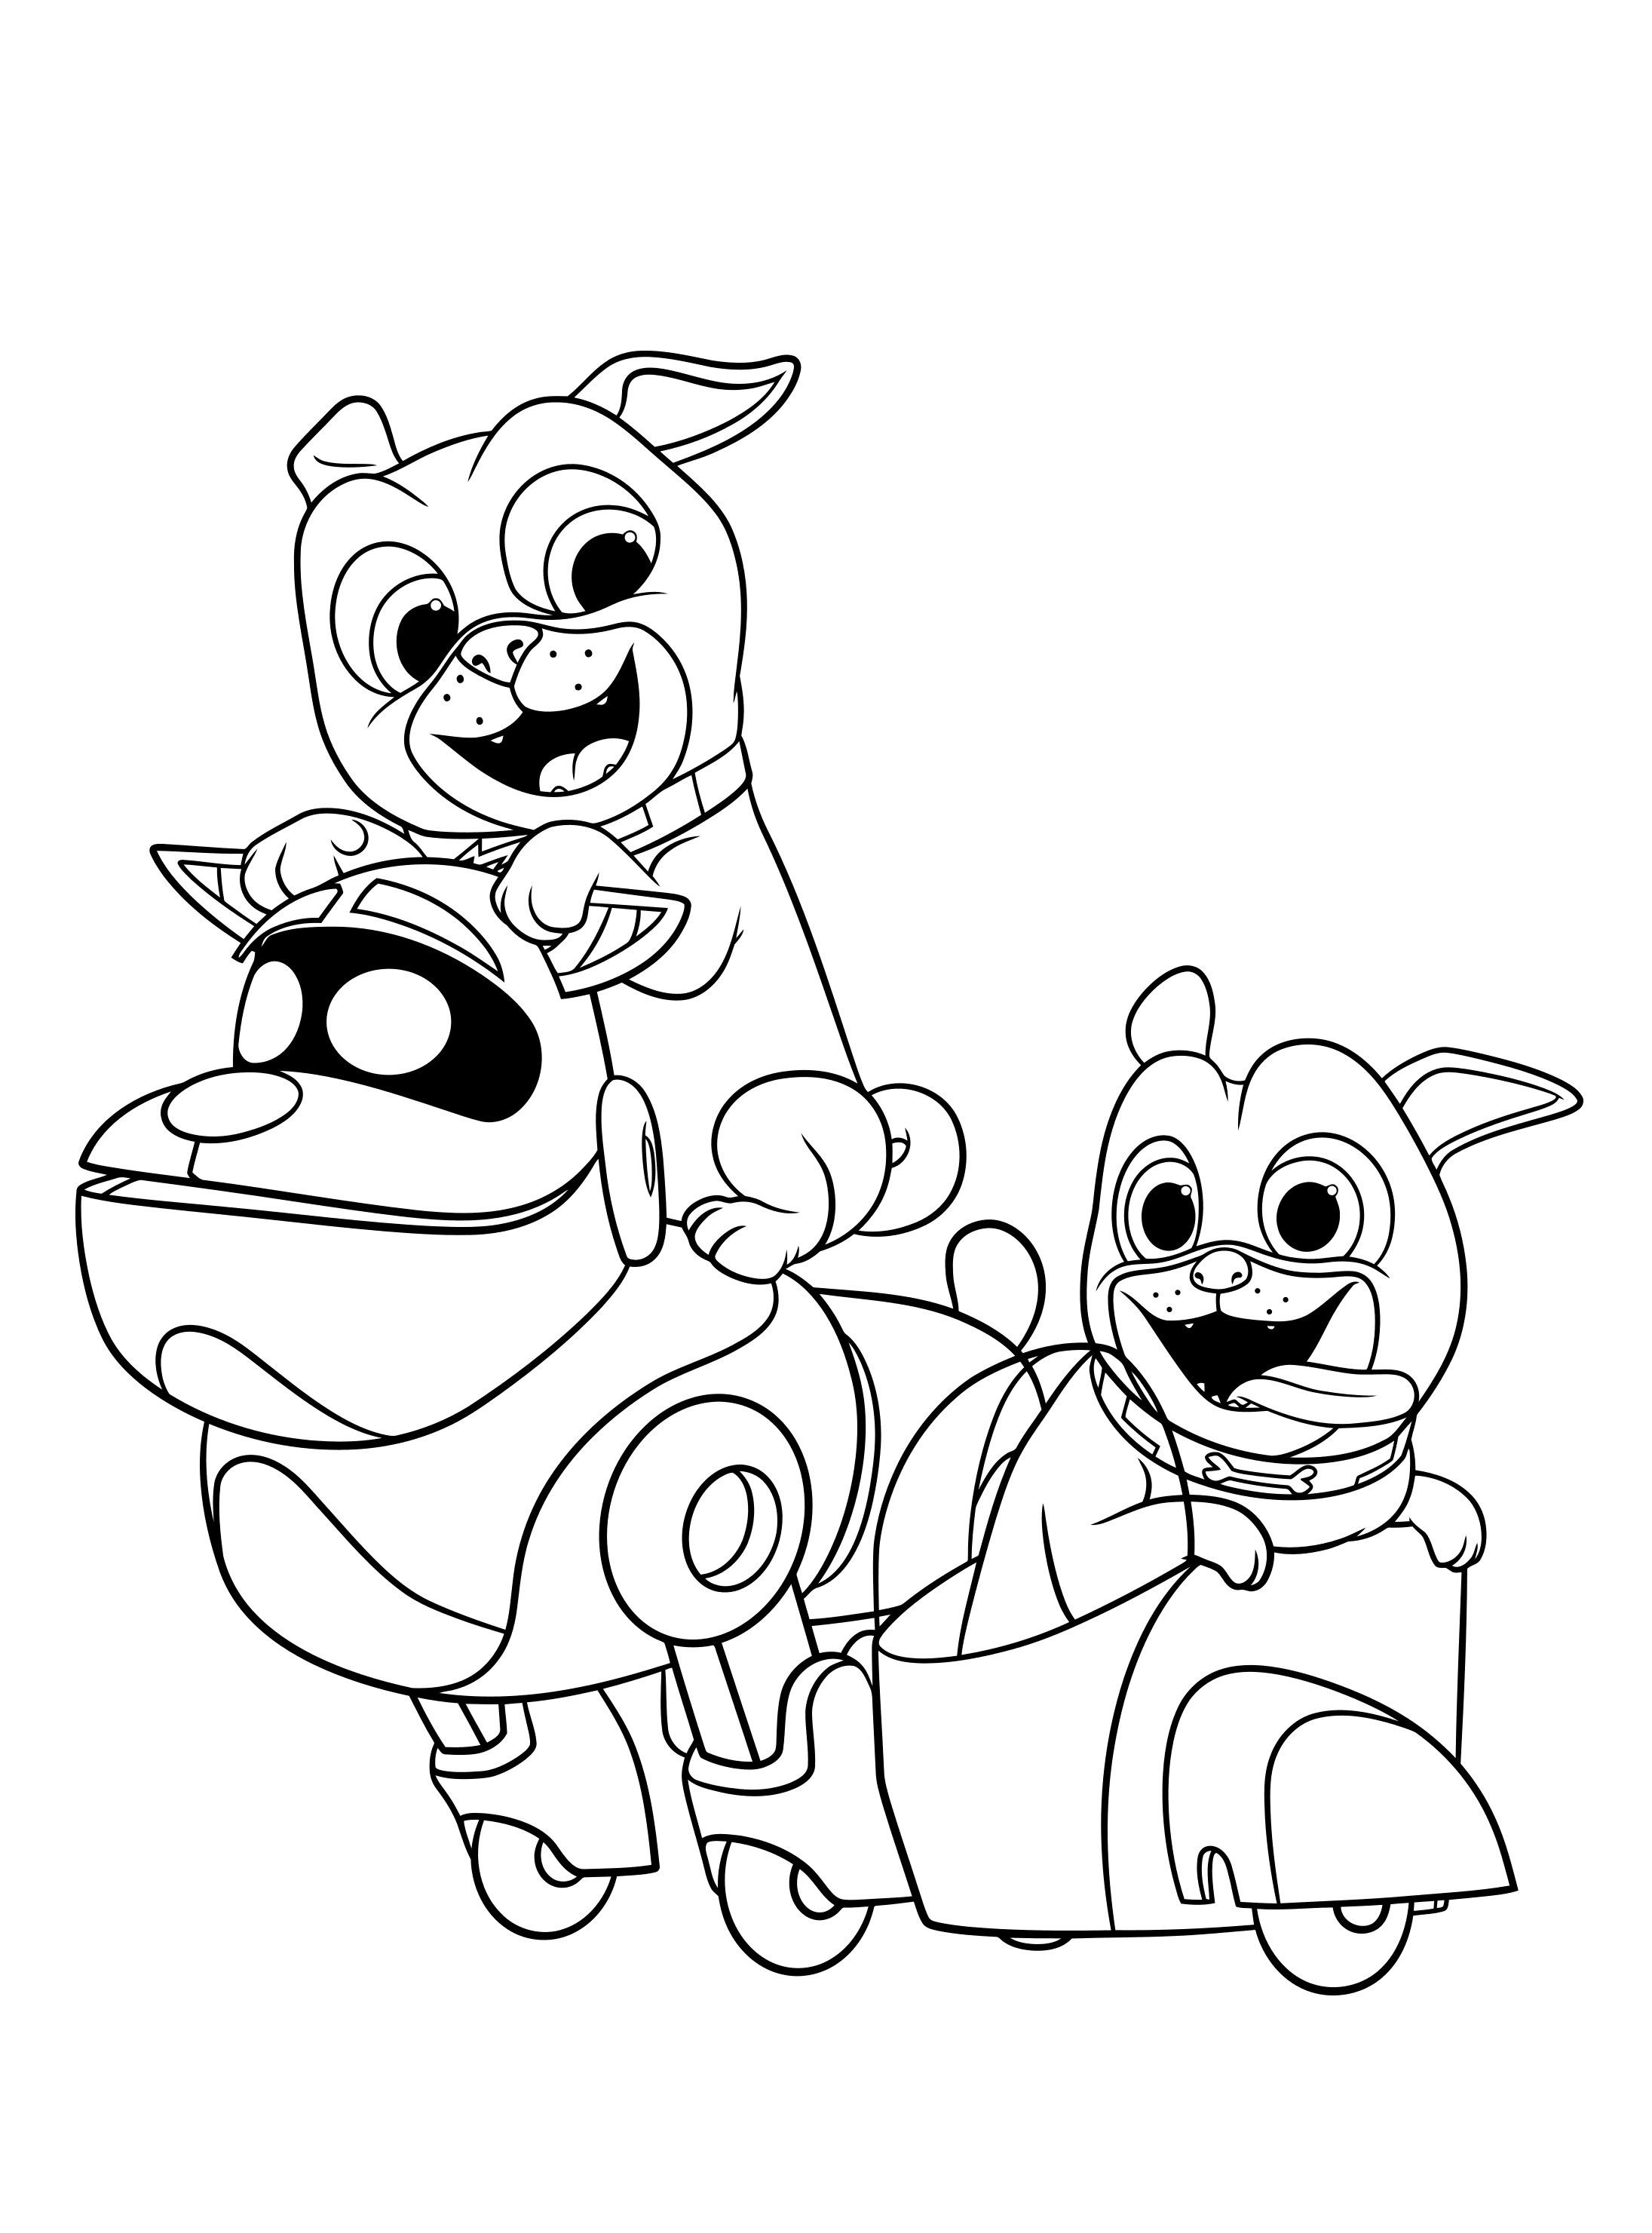 colouring dog puppy coloring pages best coloring pages for kids colouring dog 1 1